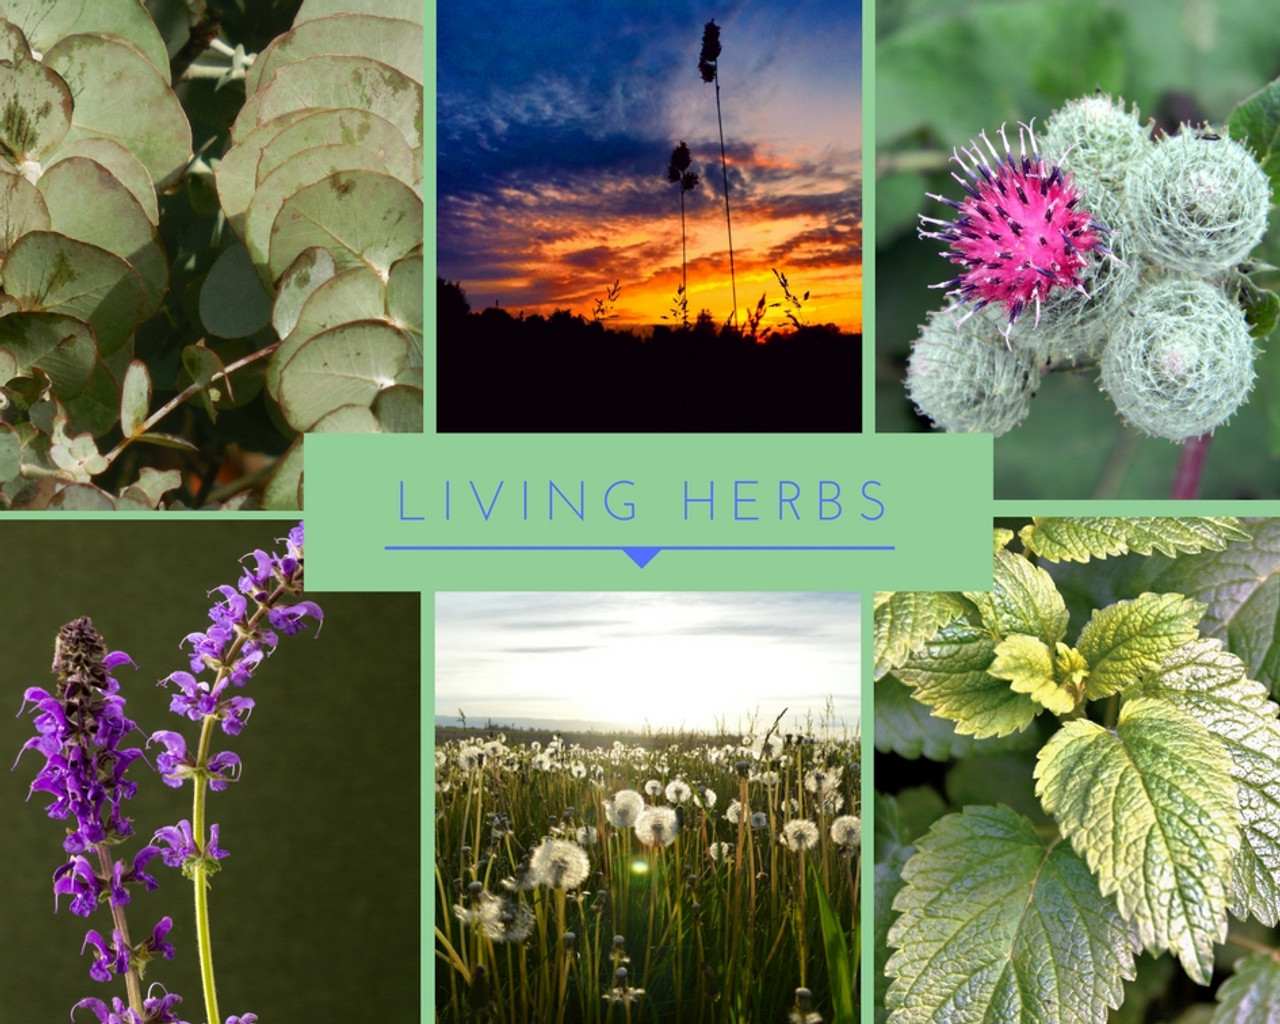 Living Fermented Herbs: Optimizing Health Through Plants